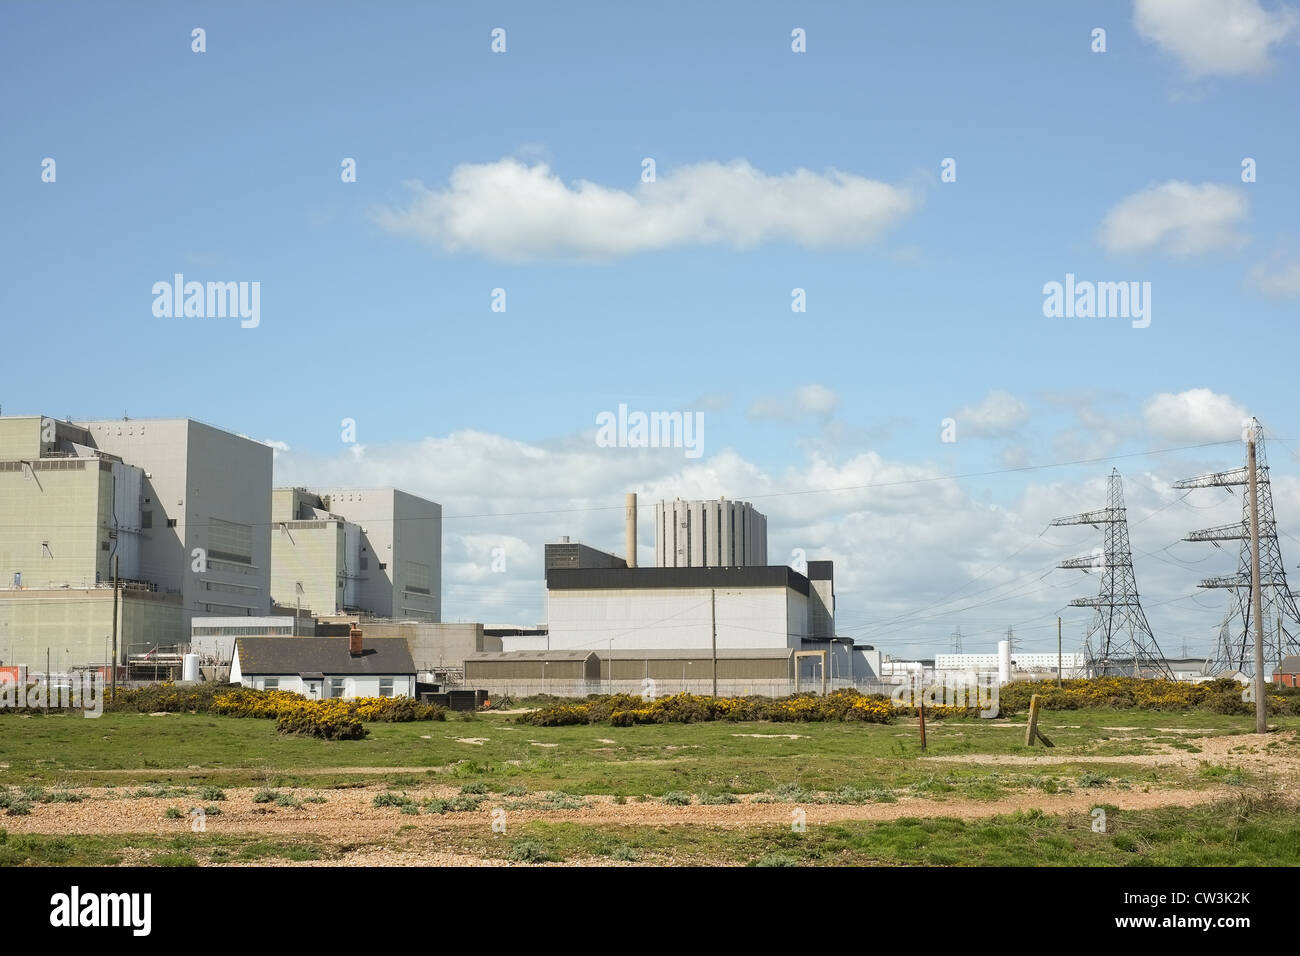 The nuclear power generating station at Dungeness, Kent, UK, This planr is known as Dungeness B. - Stock Image